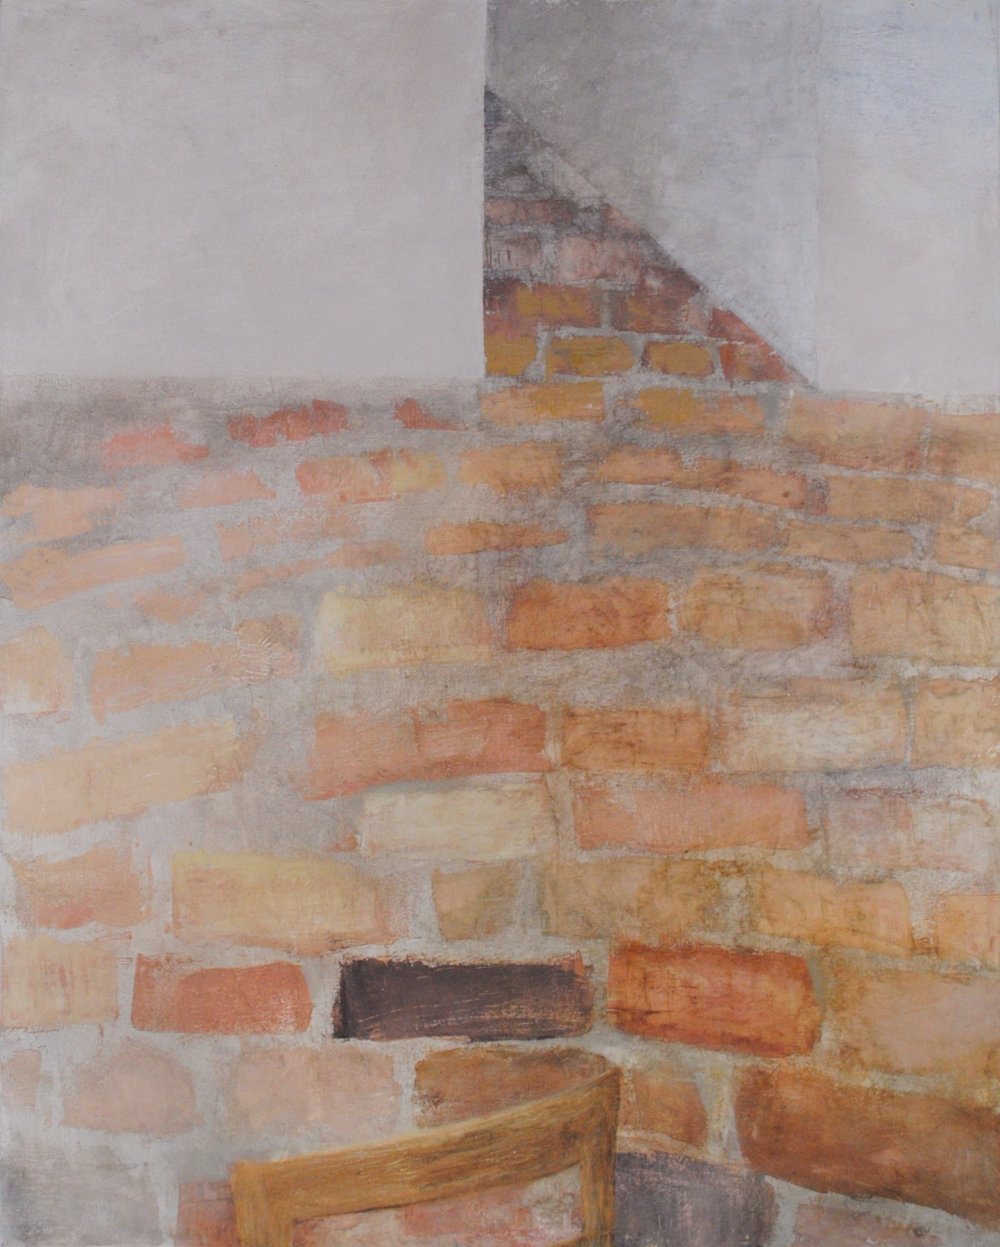 Floor/Wall, Oil on Canvas, 47 x 36 inches, 2012